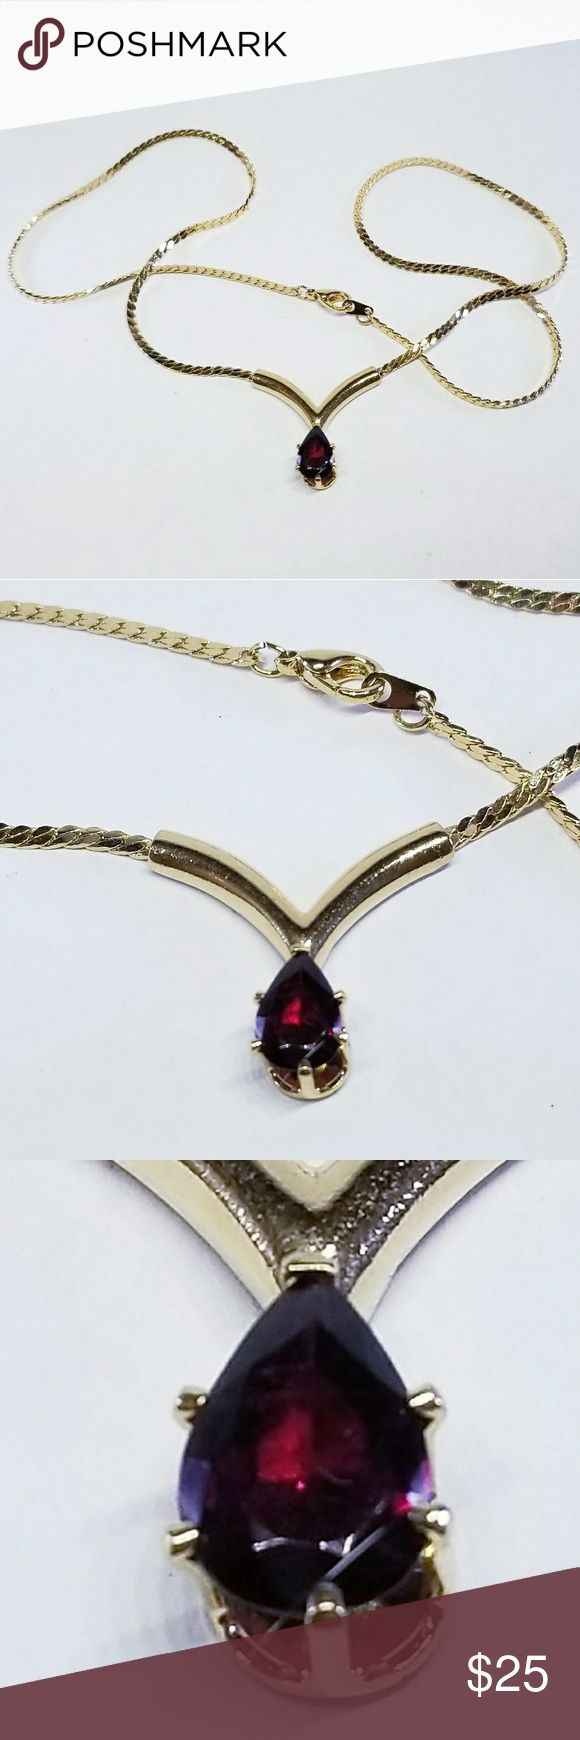 Garnet necklace Beautiful vintage garnet necklace all in one. Its stunning! Jewelry Necklaces